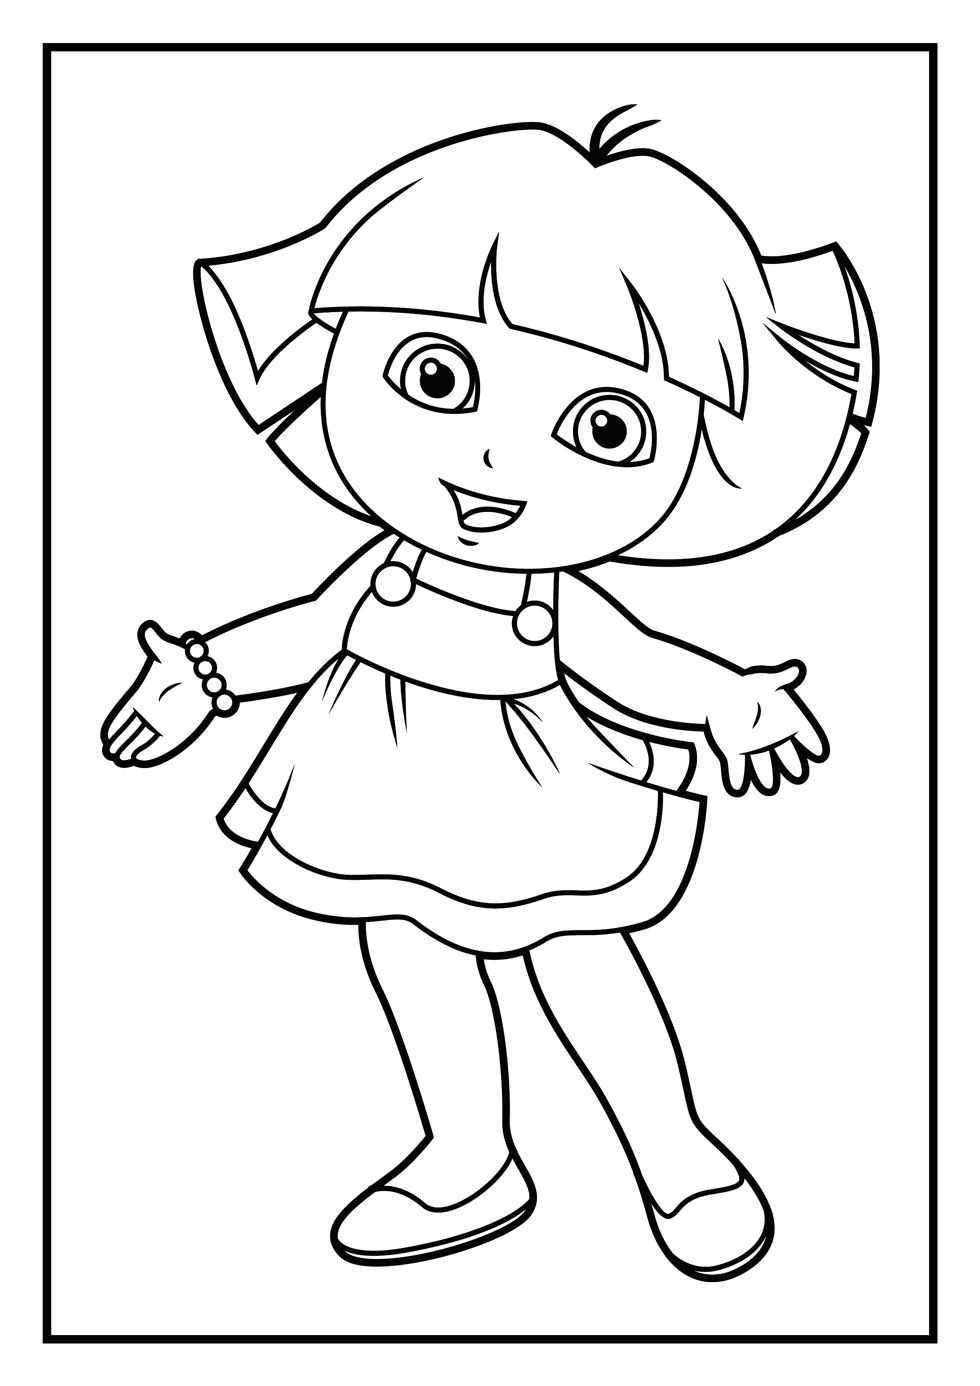 dora the explorer coloring pages 06 | Patterns | Pinterest | Patterns